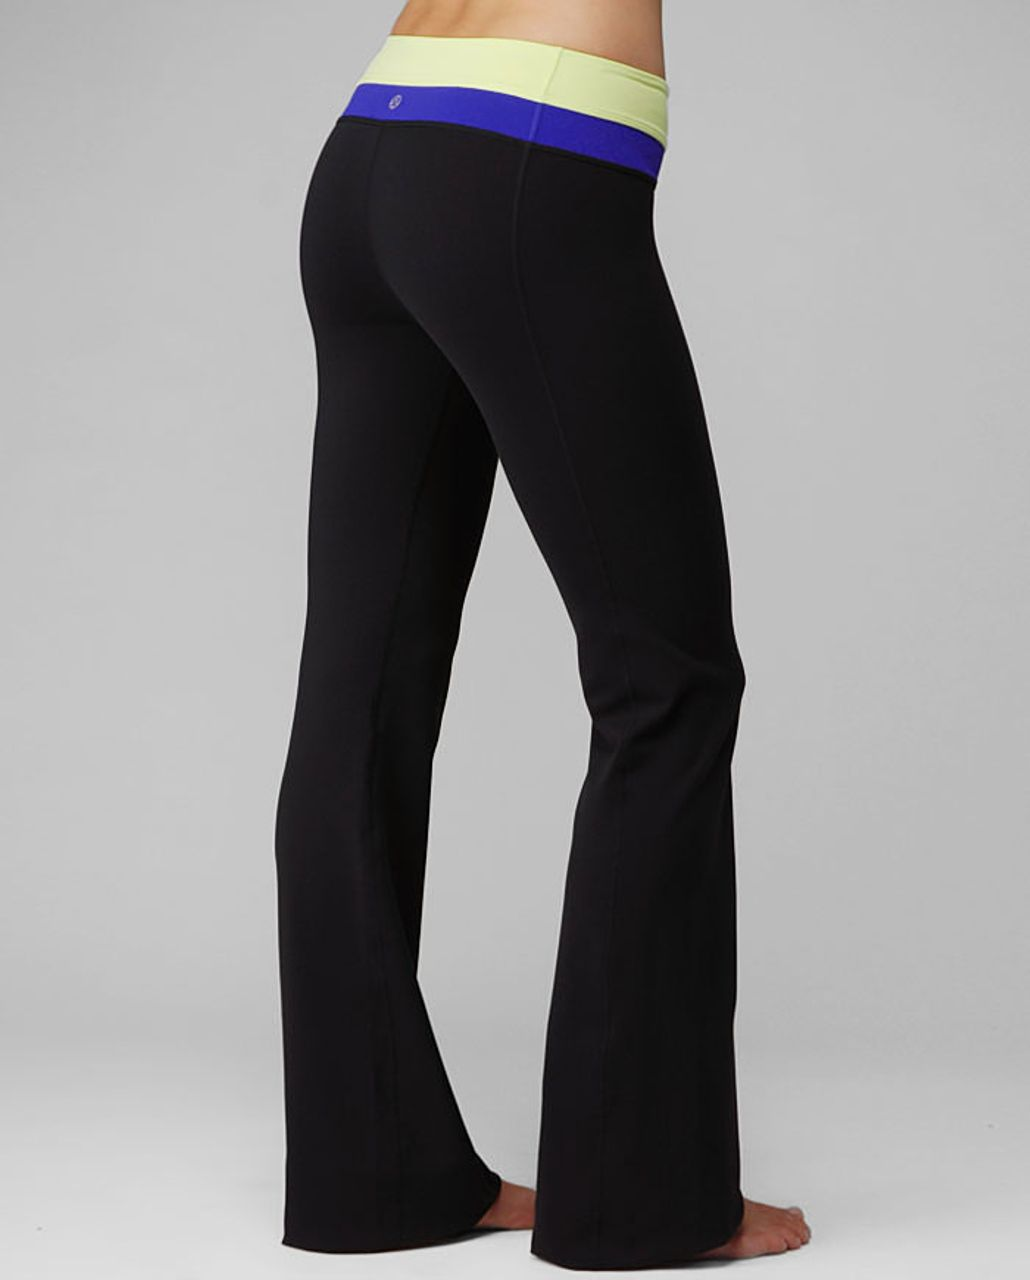 Lululemon Groove Pant (Regular) - Black /  Wish Blue